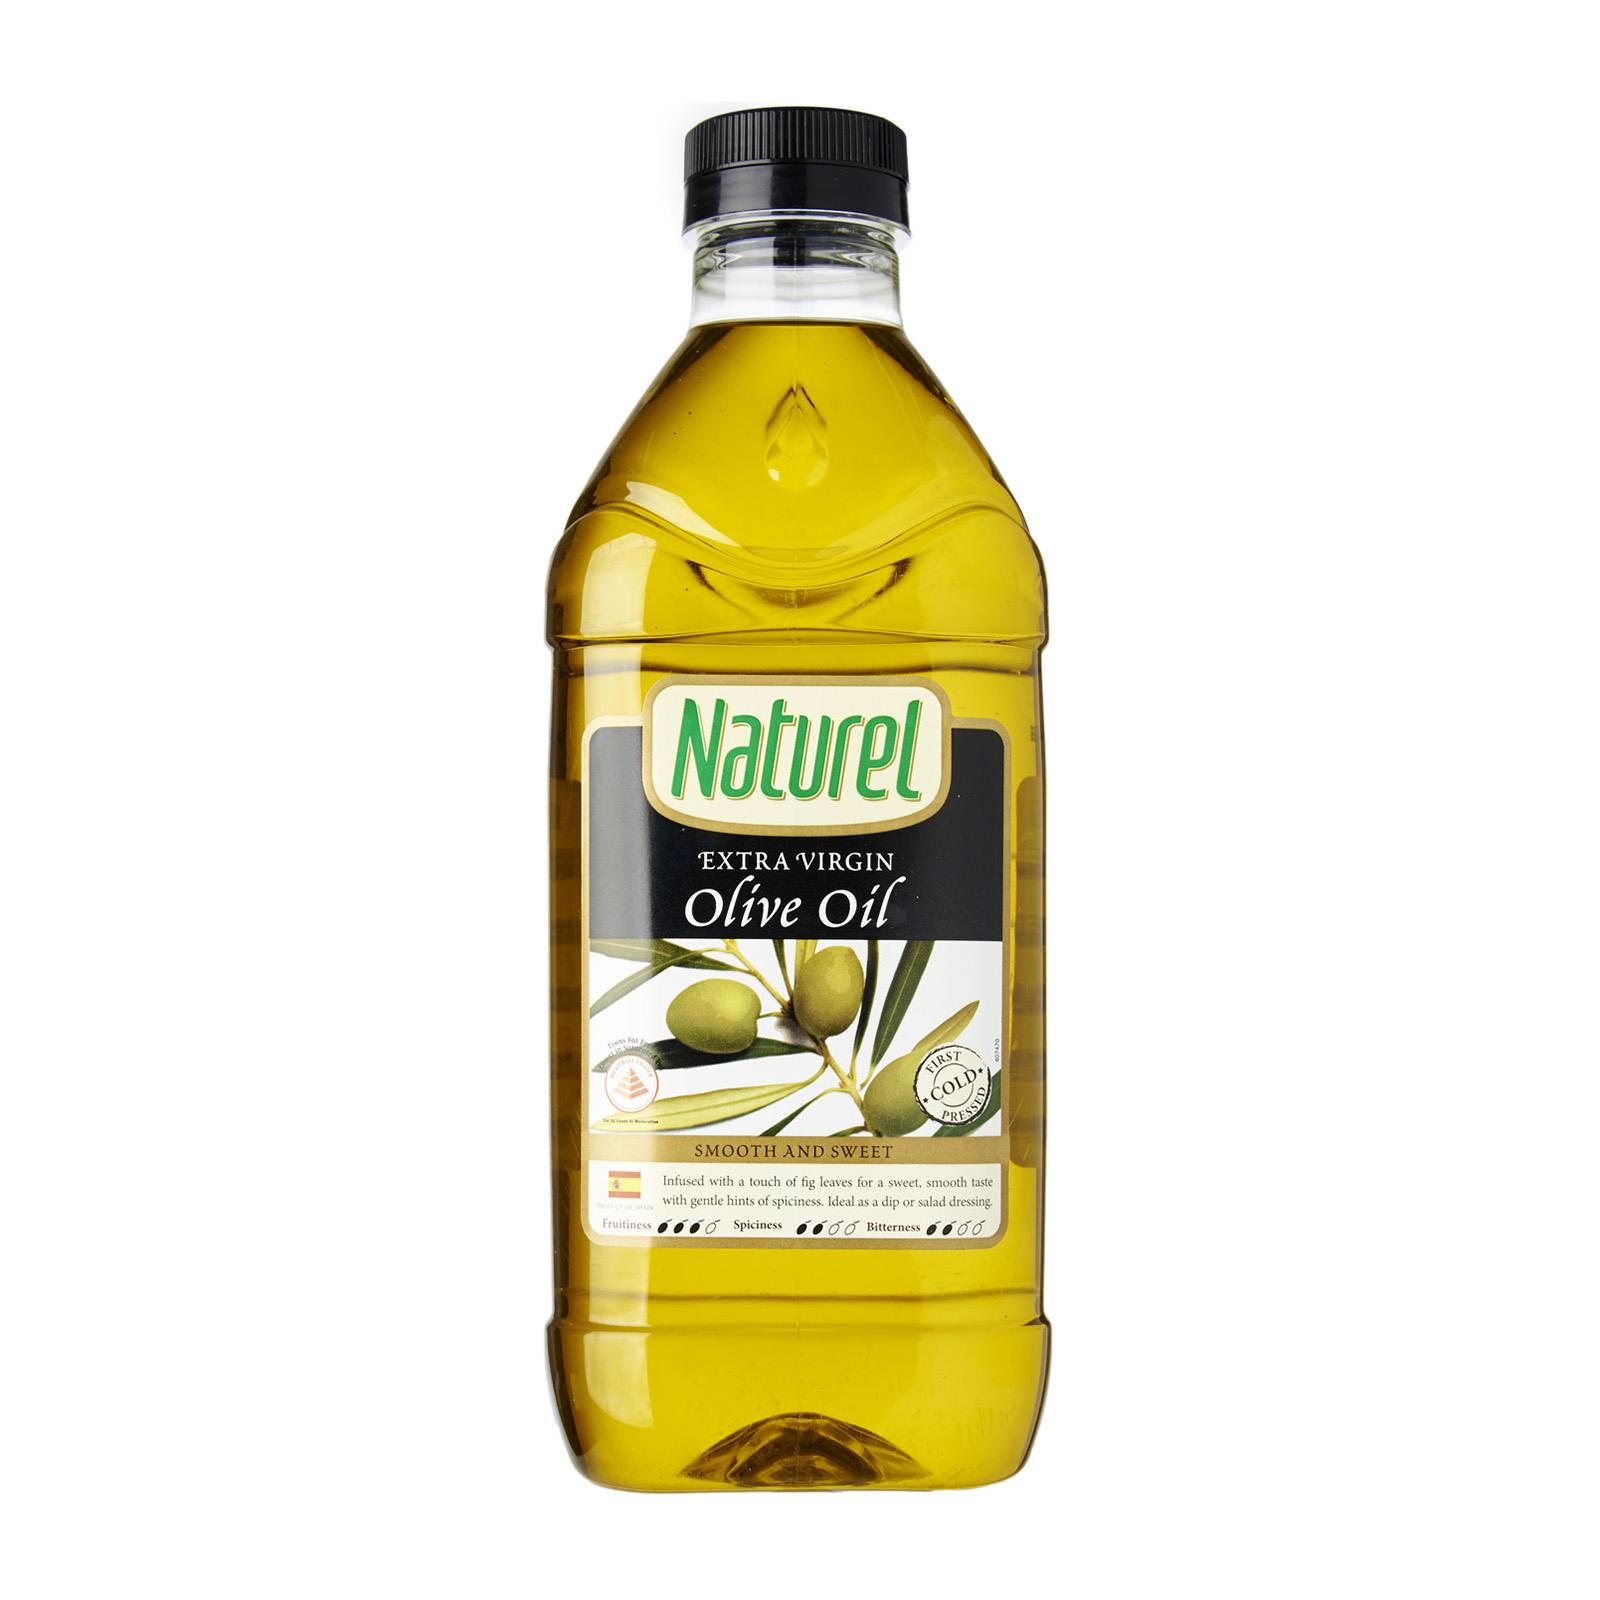 Naturel Extra Virgin Olive Oil By Redmart.